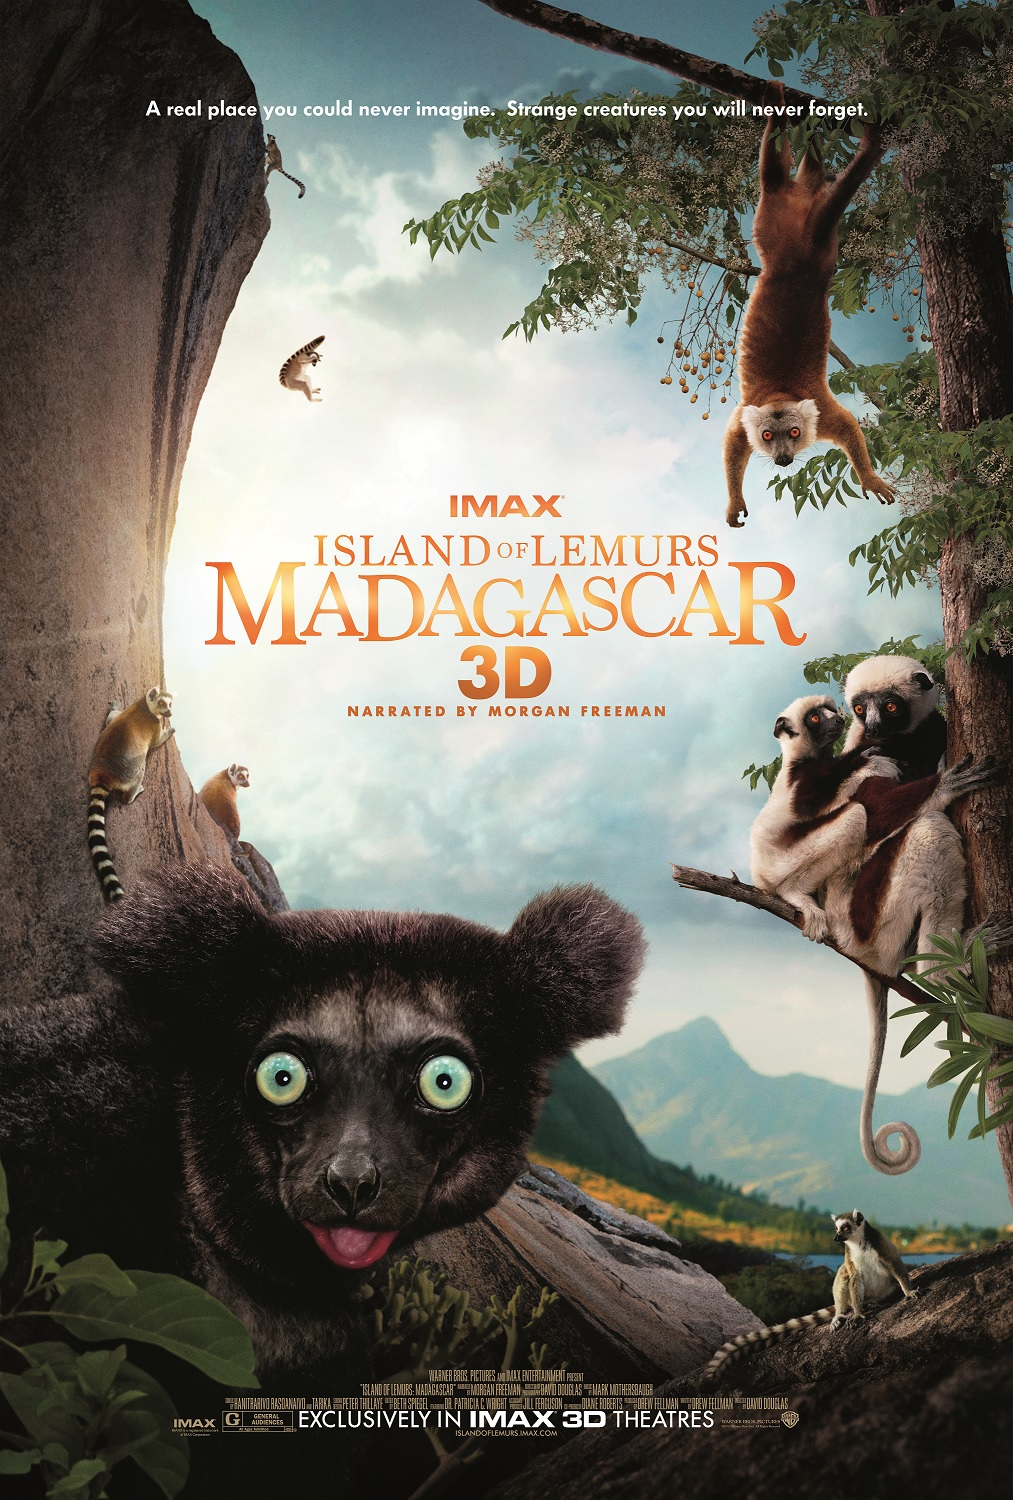 island of lemurs madagascar poster New Behind the Scenes Featurette from Island of Lemurs: Madagascar Shows Tons of Furry, Fun Creatures